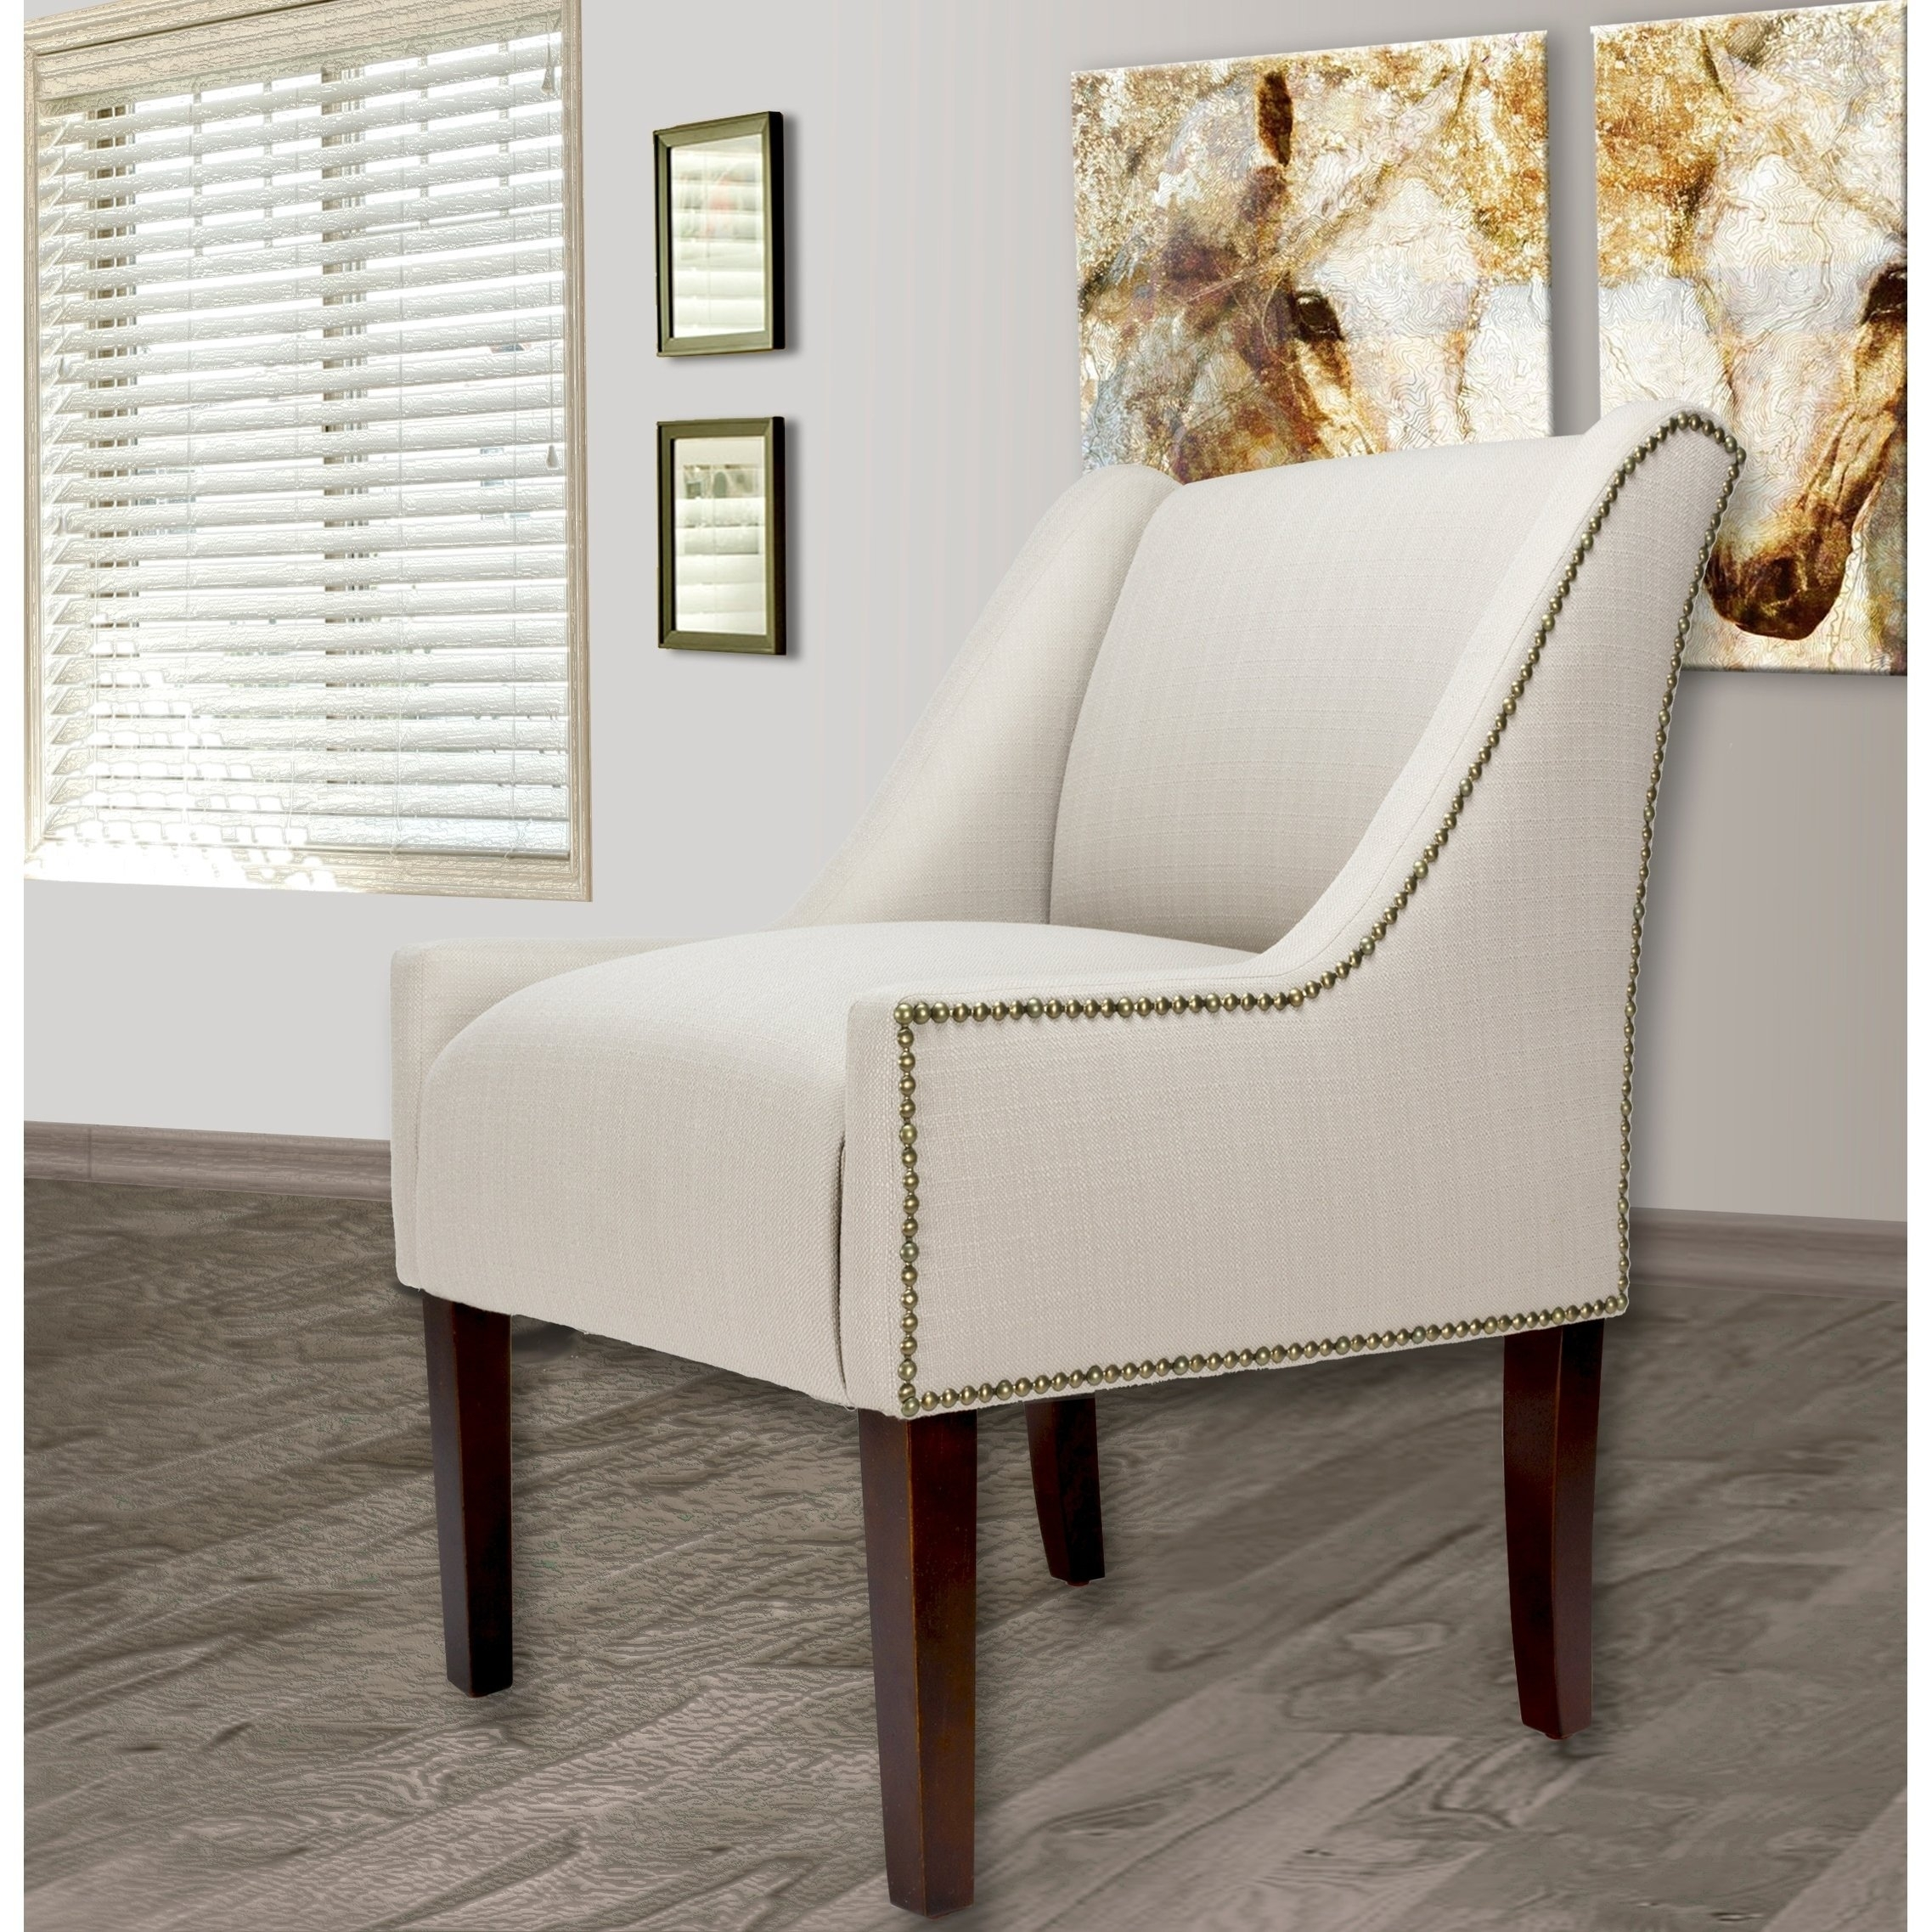 Shop Racer Sachi04 Parson Chair With Nail Trim Edging , Espresso Leg In Fashionable Lindy Dove Grey Side Chairs (View 17 of 20)